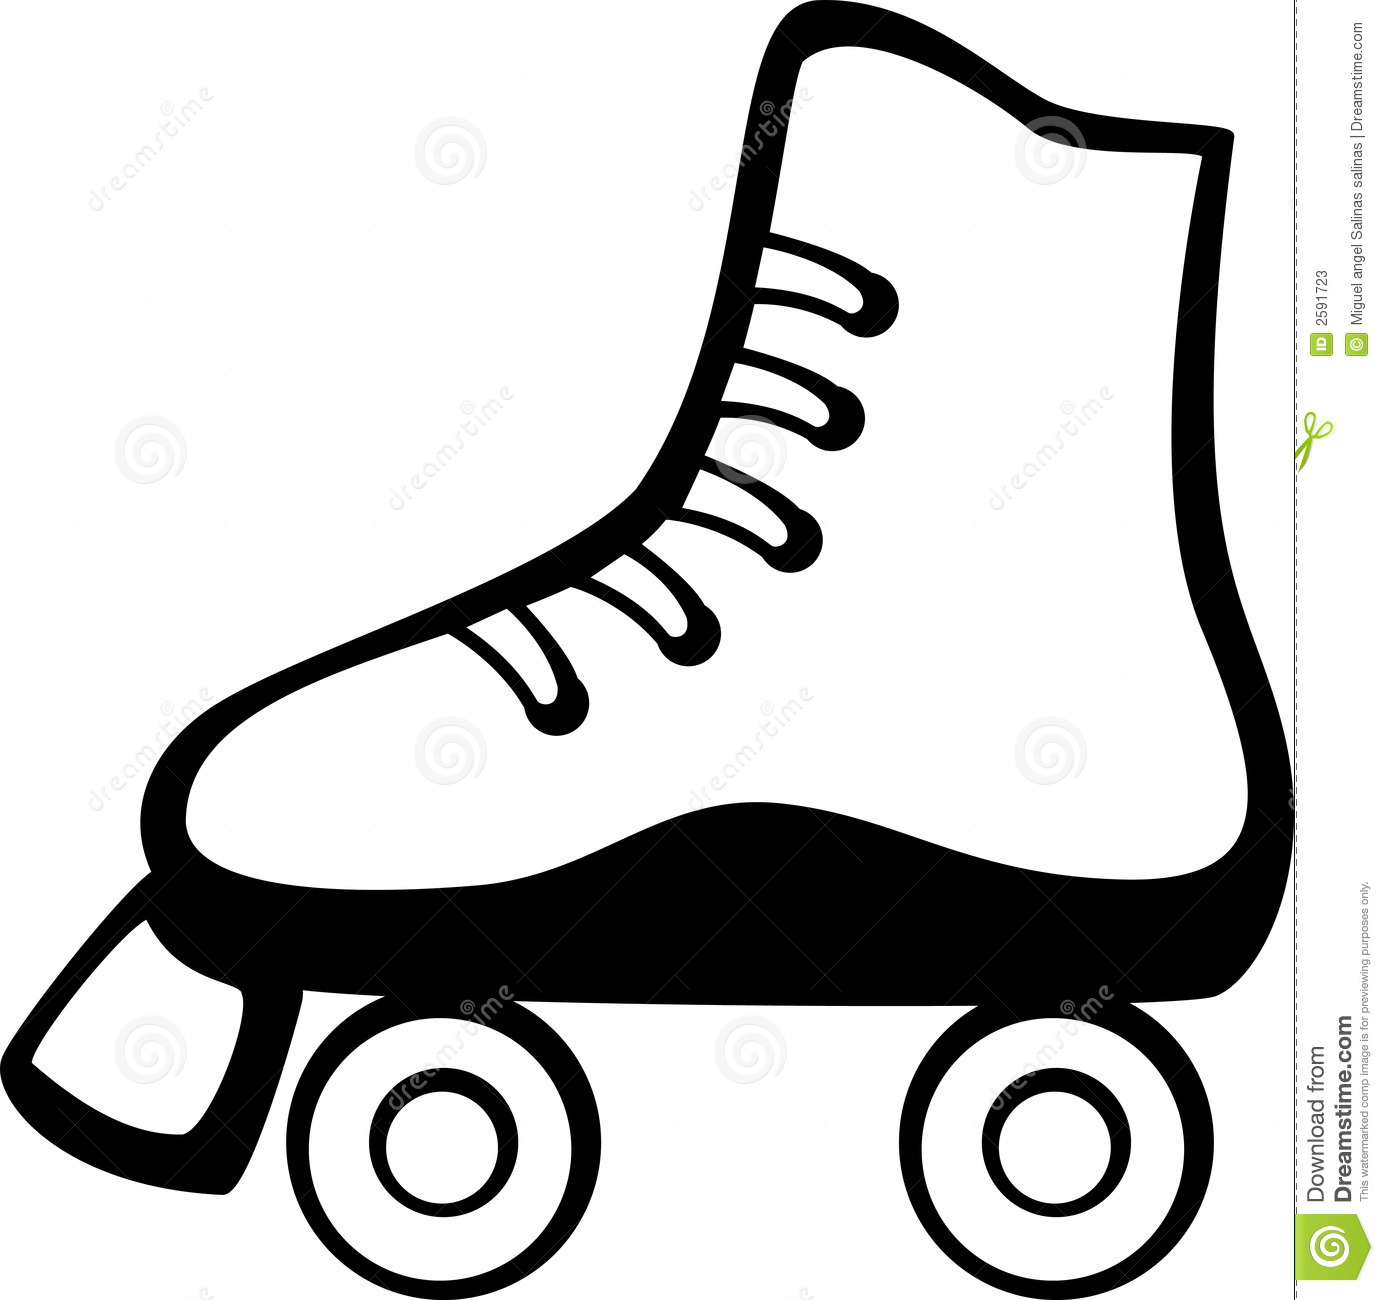 quad skate clip art - photo #6